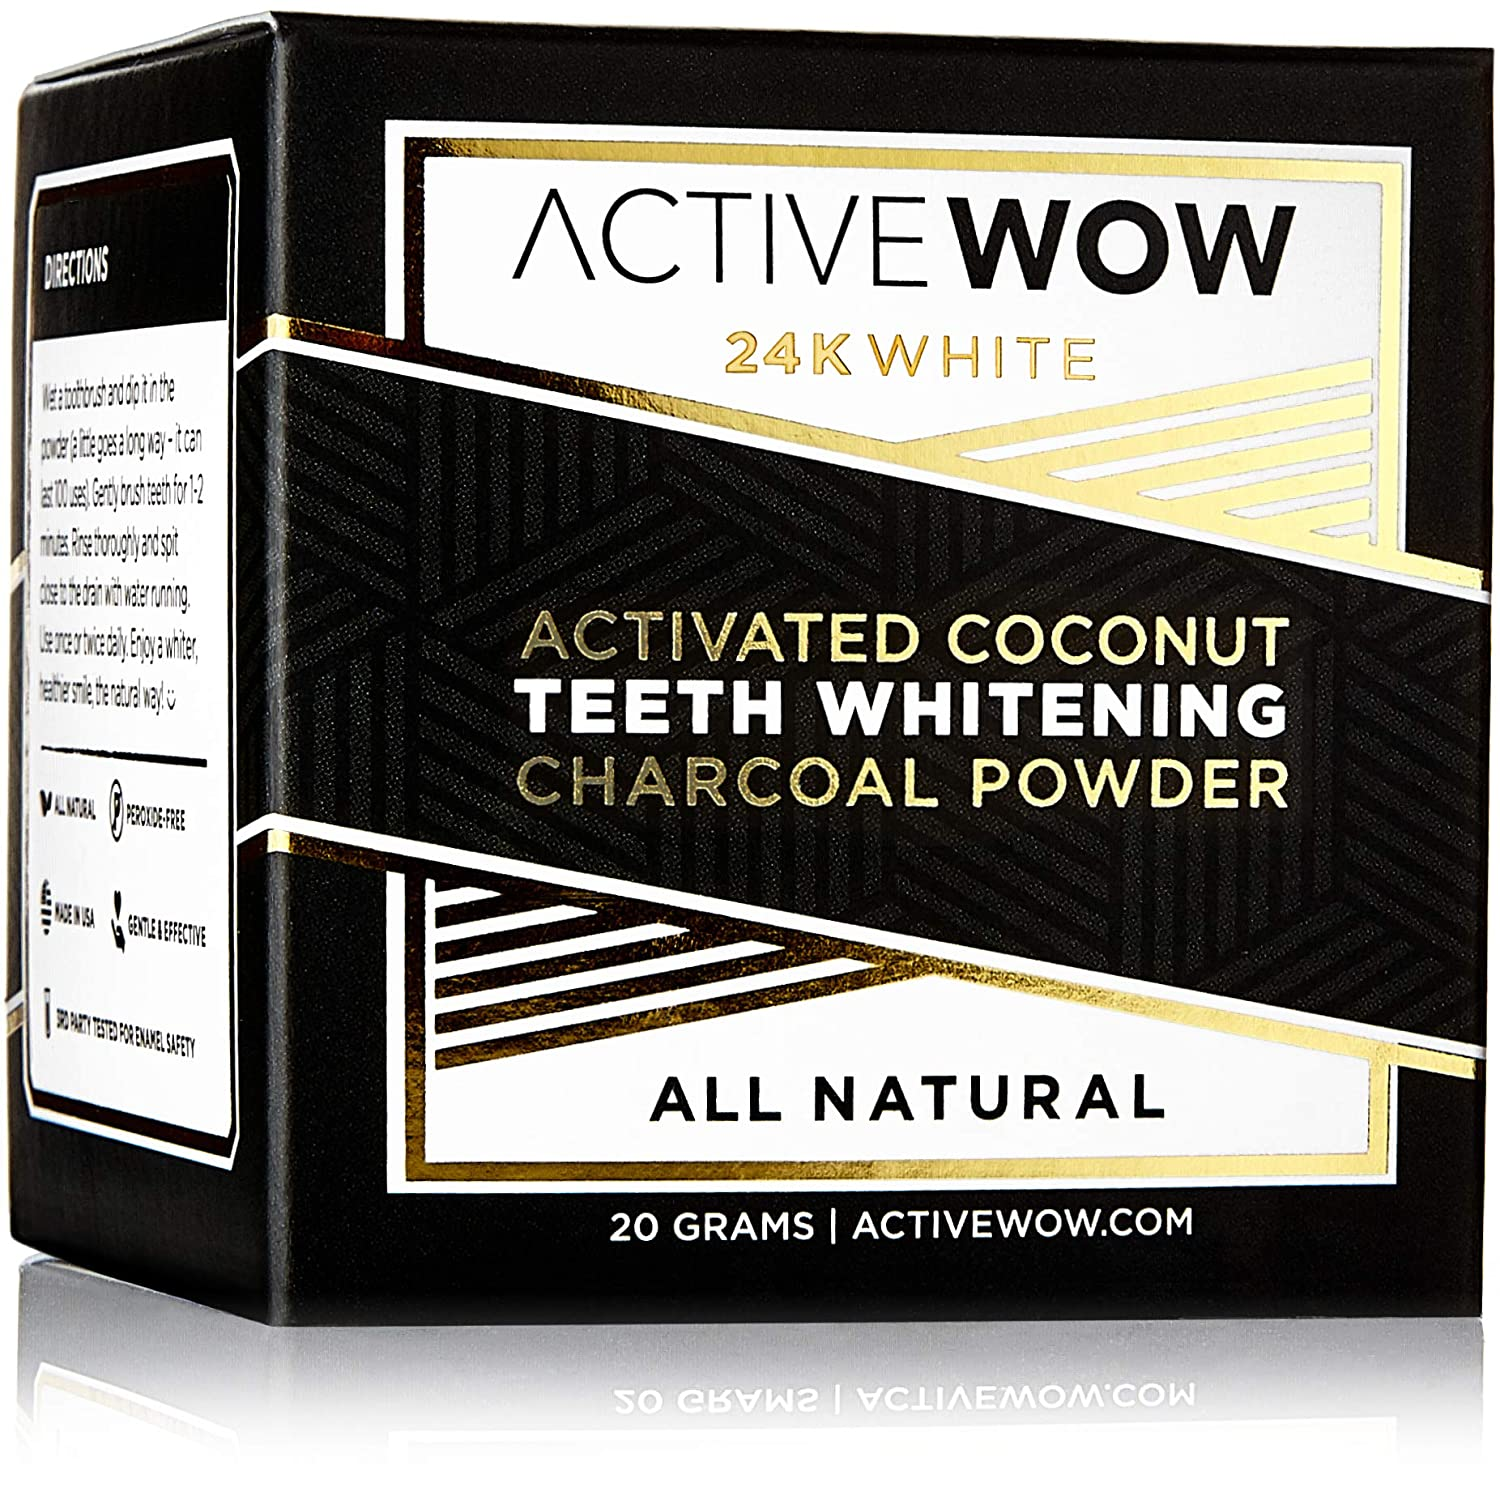 Active Wow Teeth Whitening Charcoal Powder Natural best whitening strips consumer reports